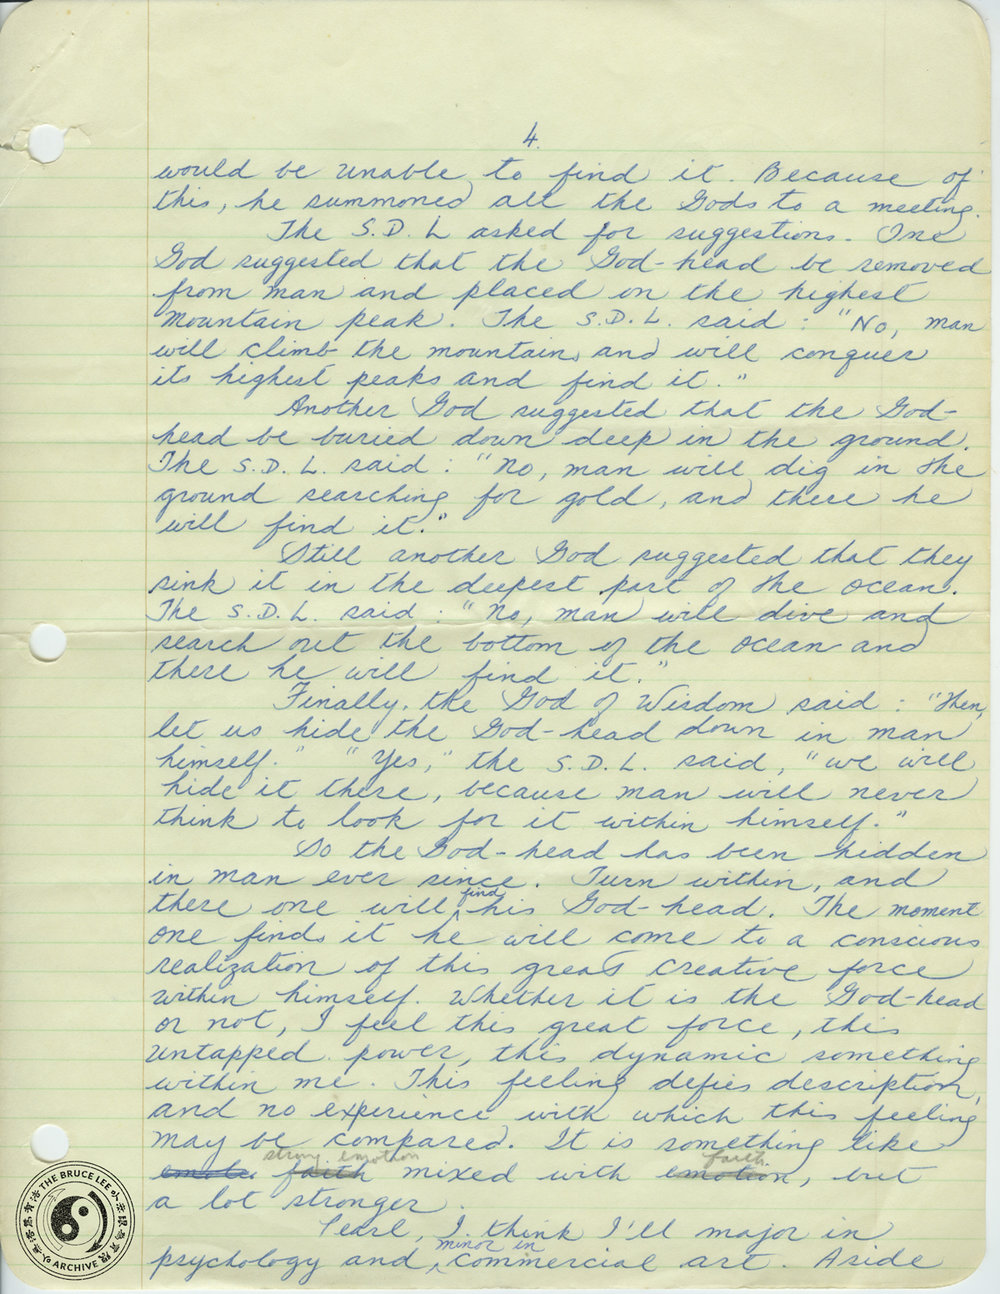 Letter-to-Pearl-draft-pg.4-archive.jpg